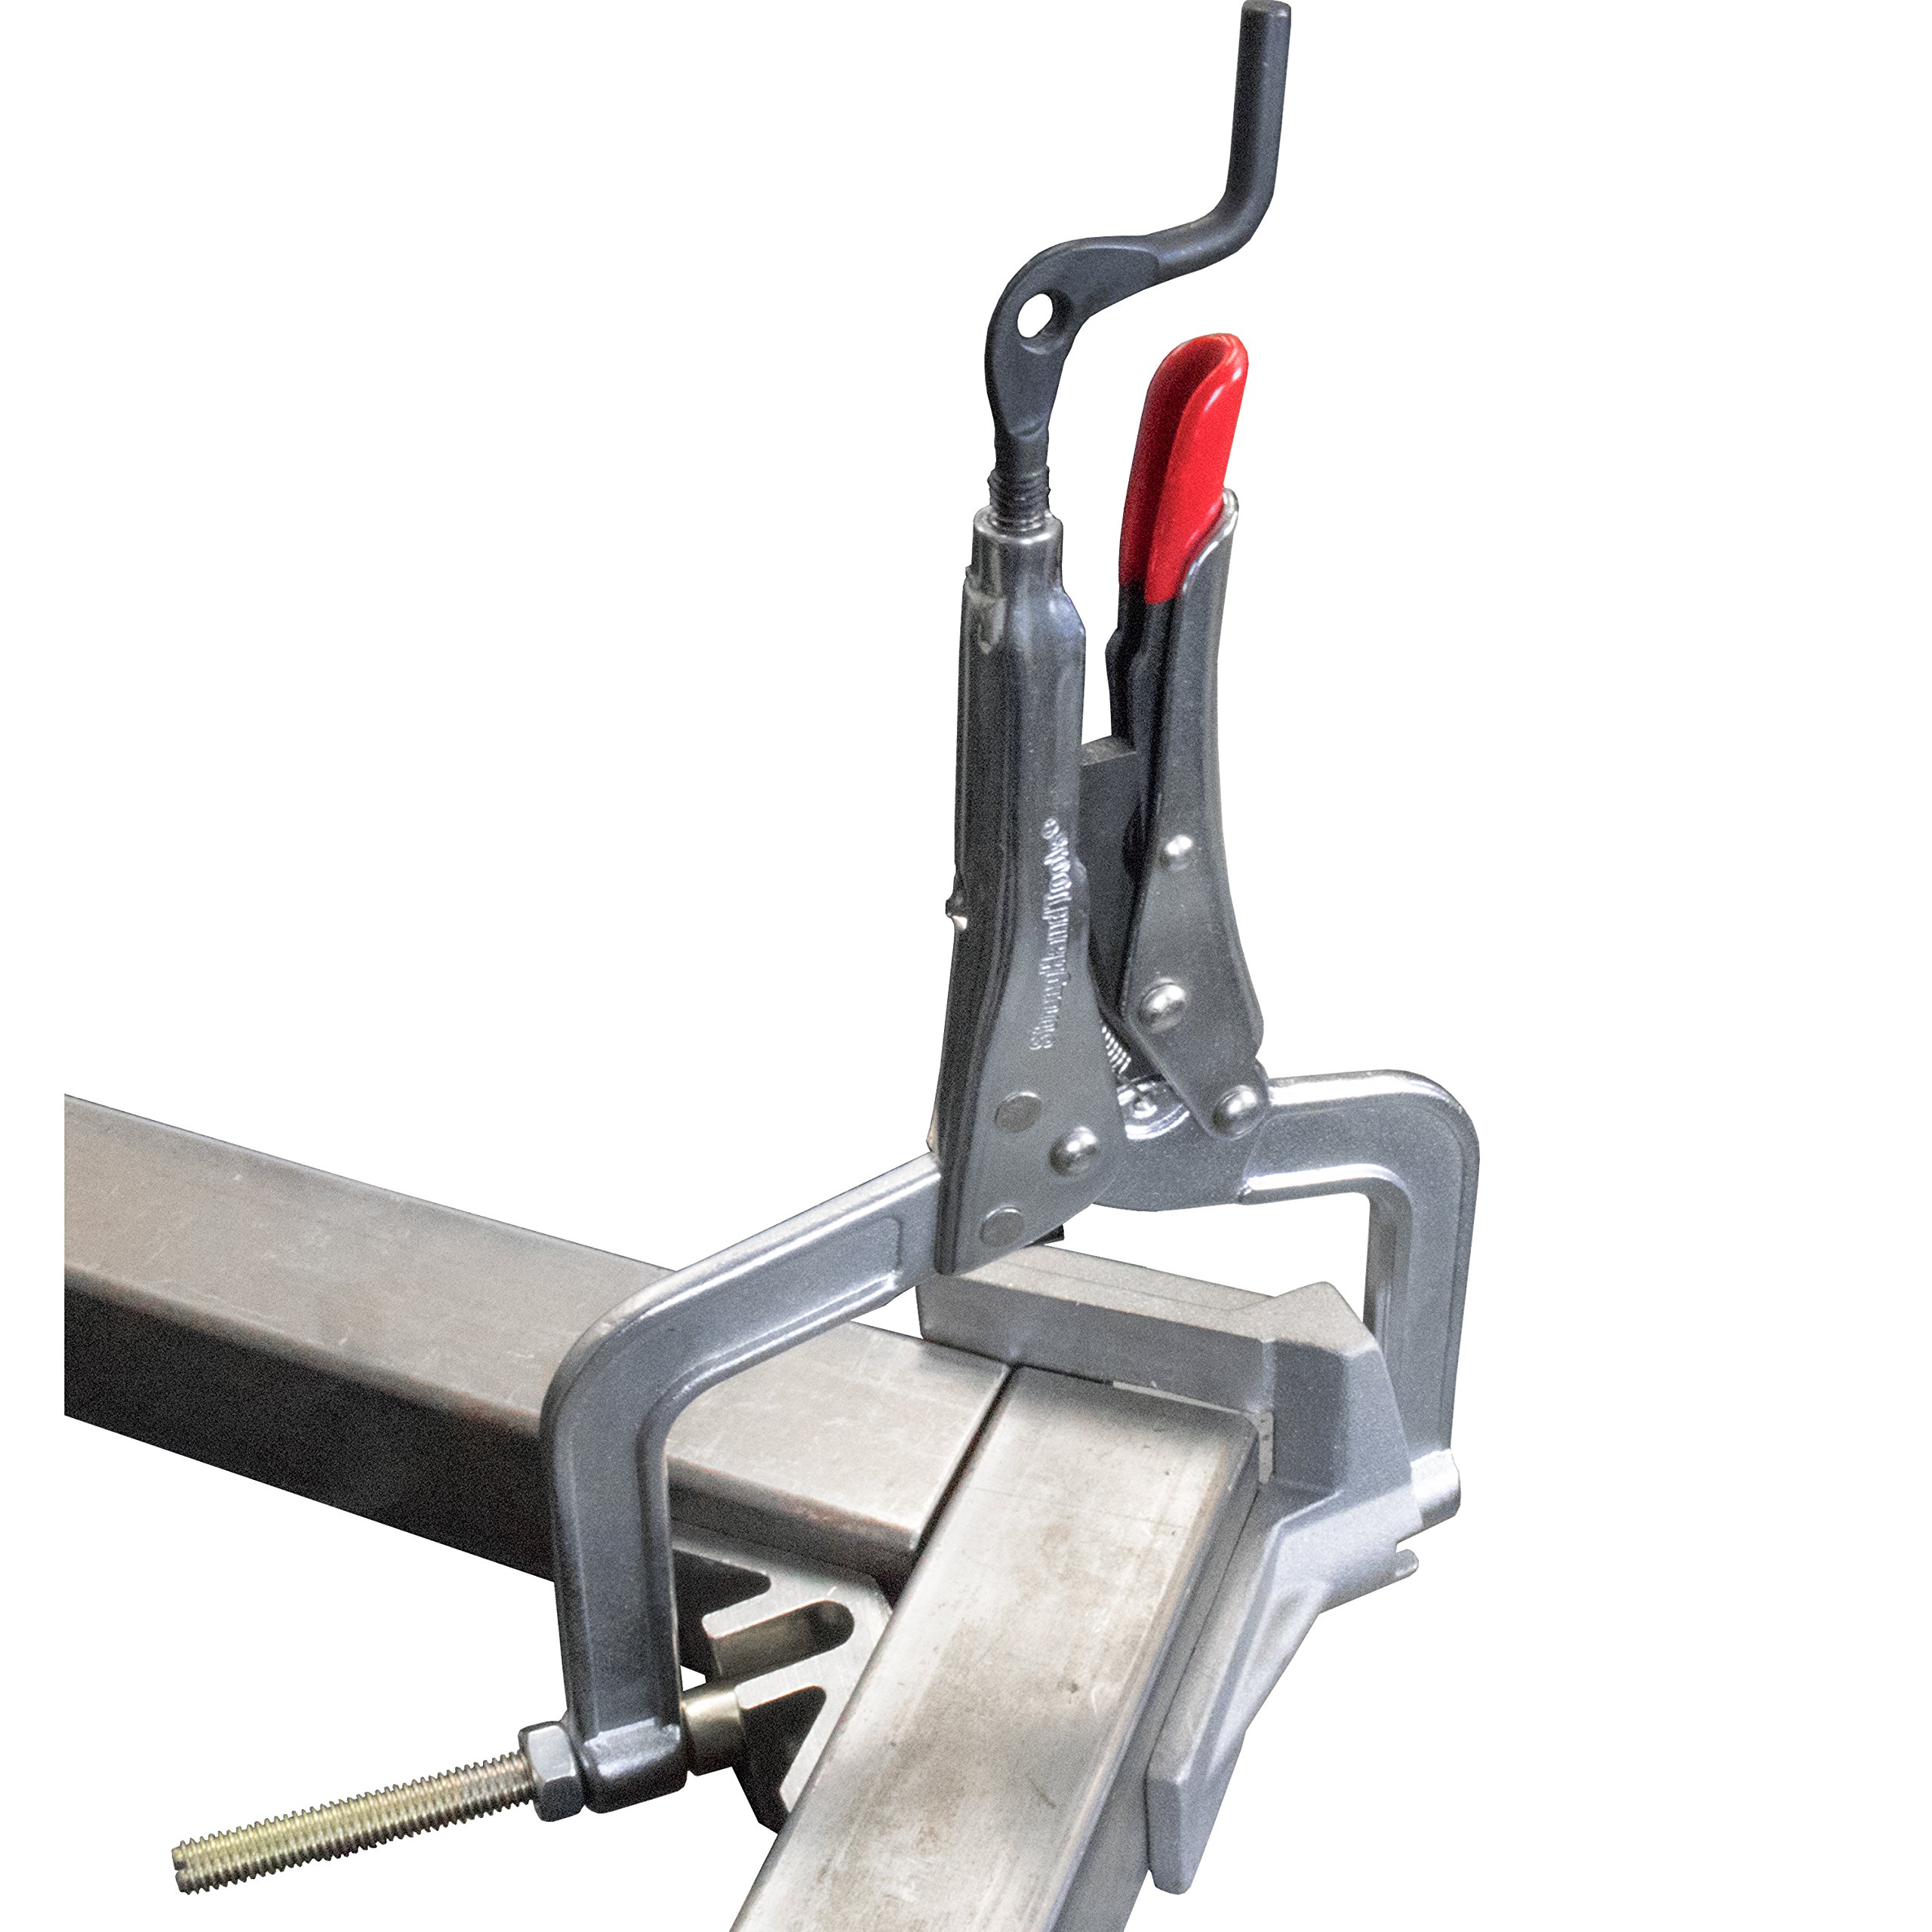 Strong Hand Tools Jointmaster 90deg Angle Joining Tool - 3in. Throat, Model# PL634 by Strong Hand Tools